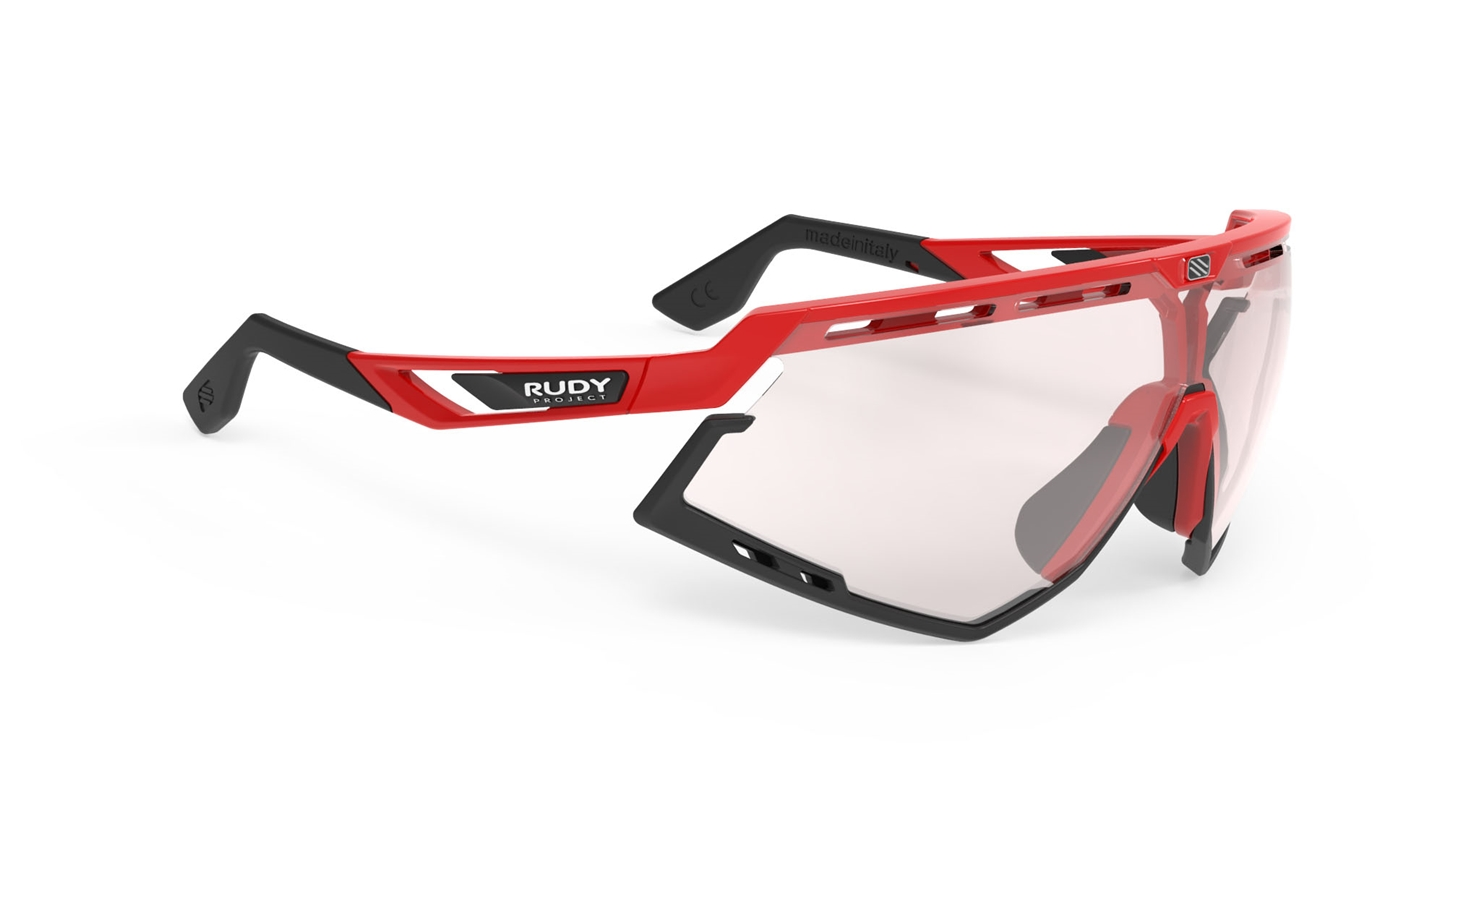 fd6d1bf80eb1 Glasses and sports helmets - Rudy Project